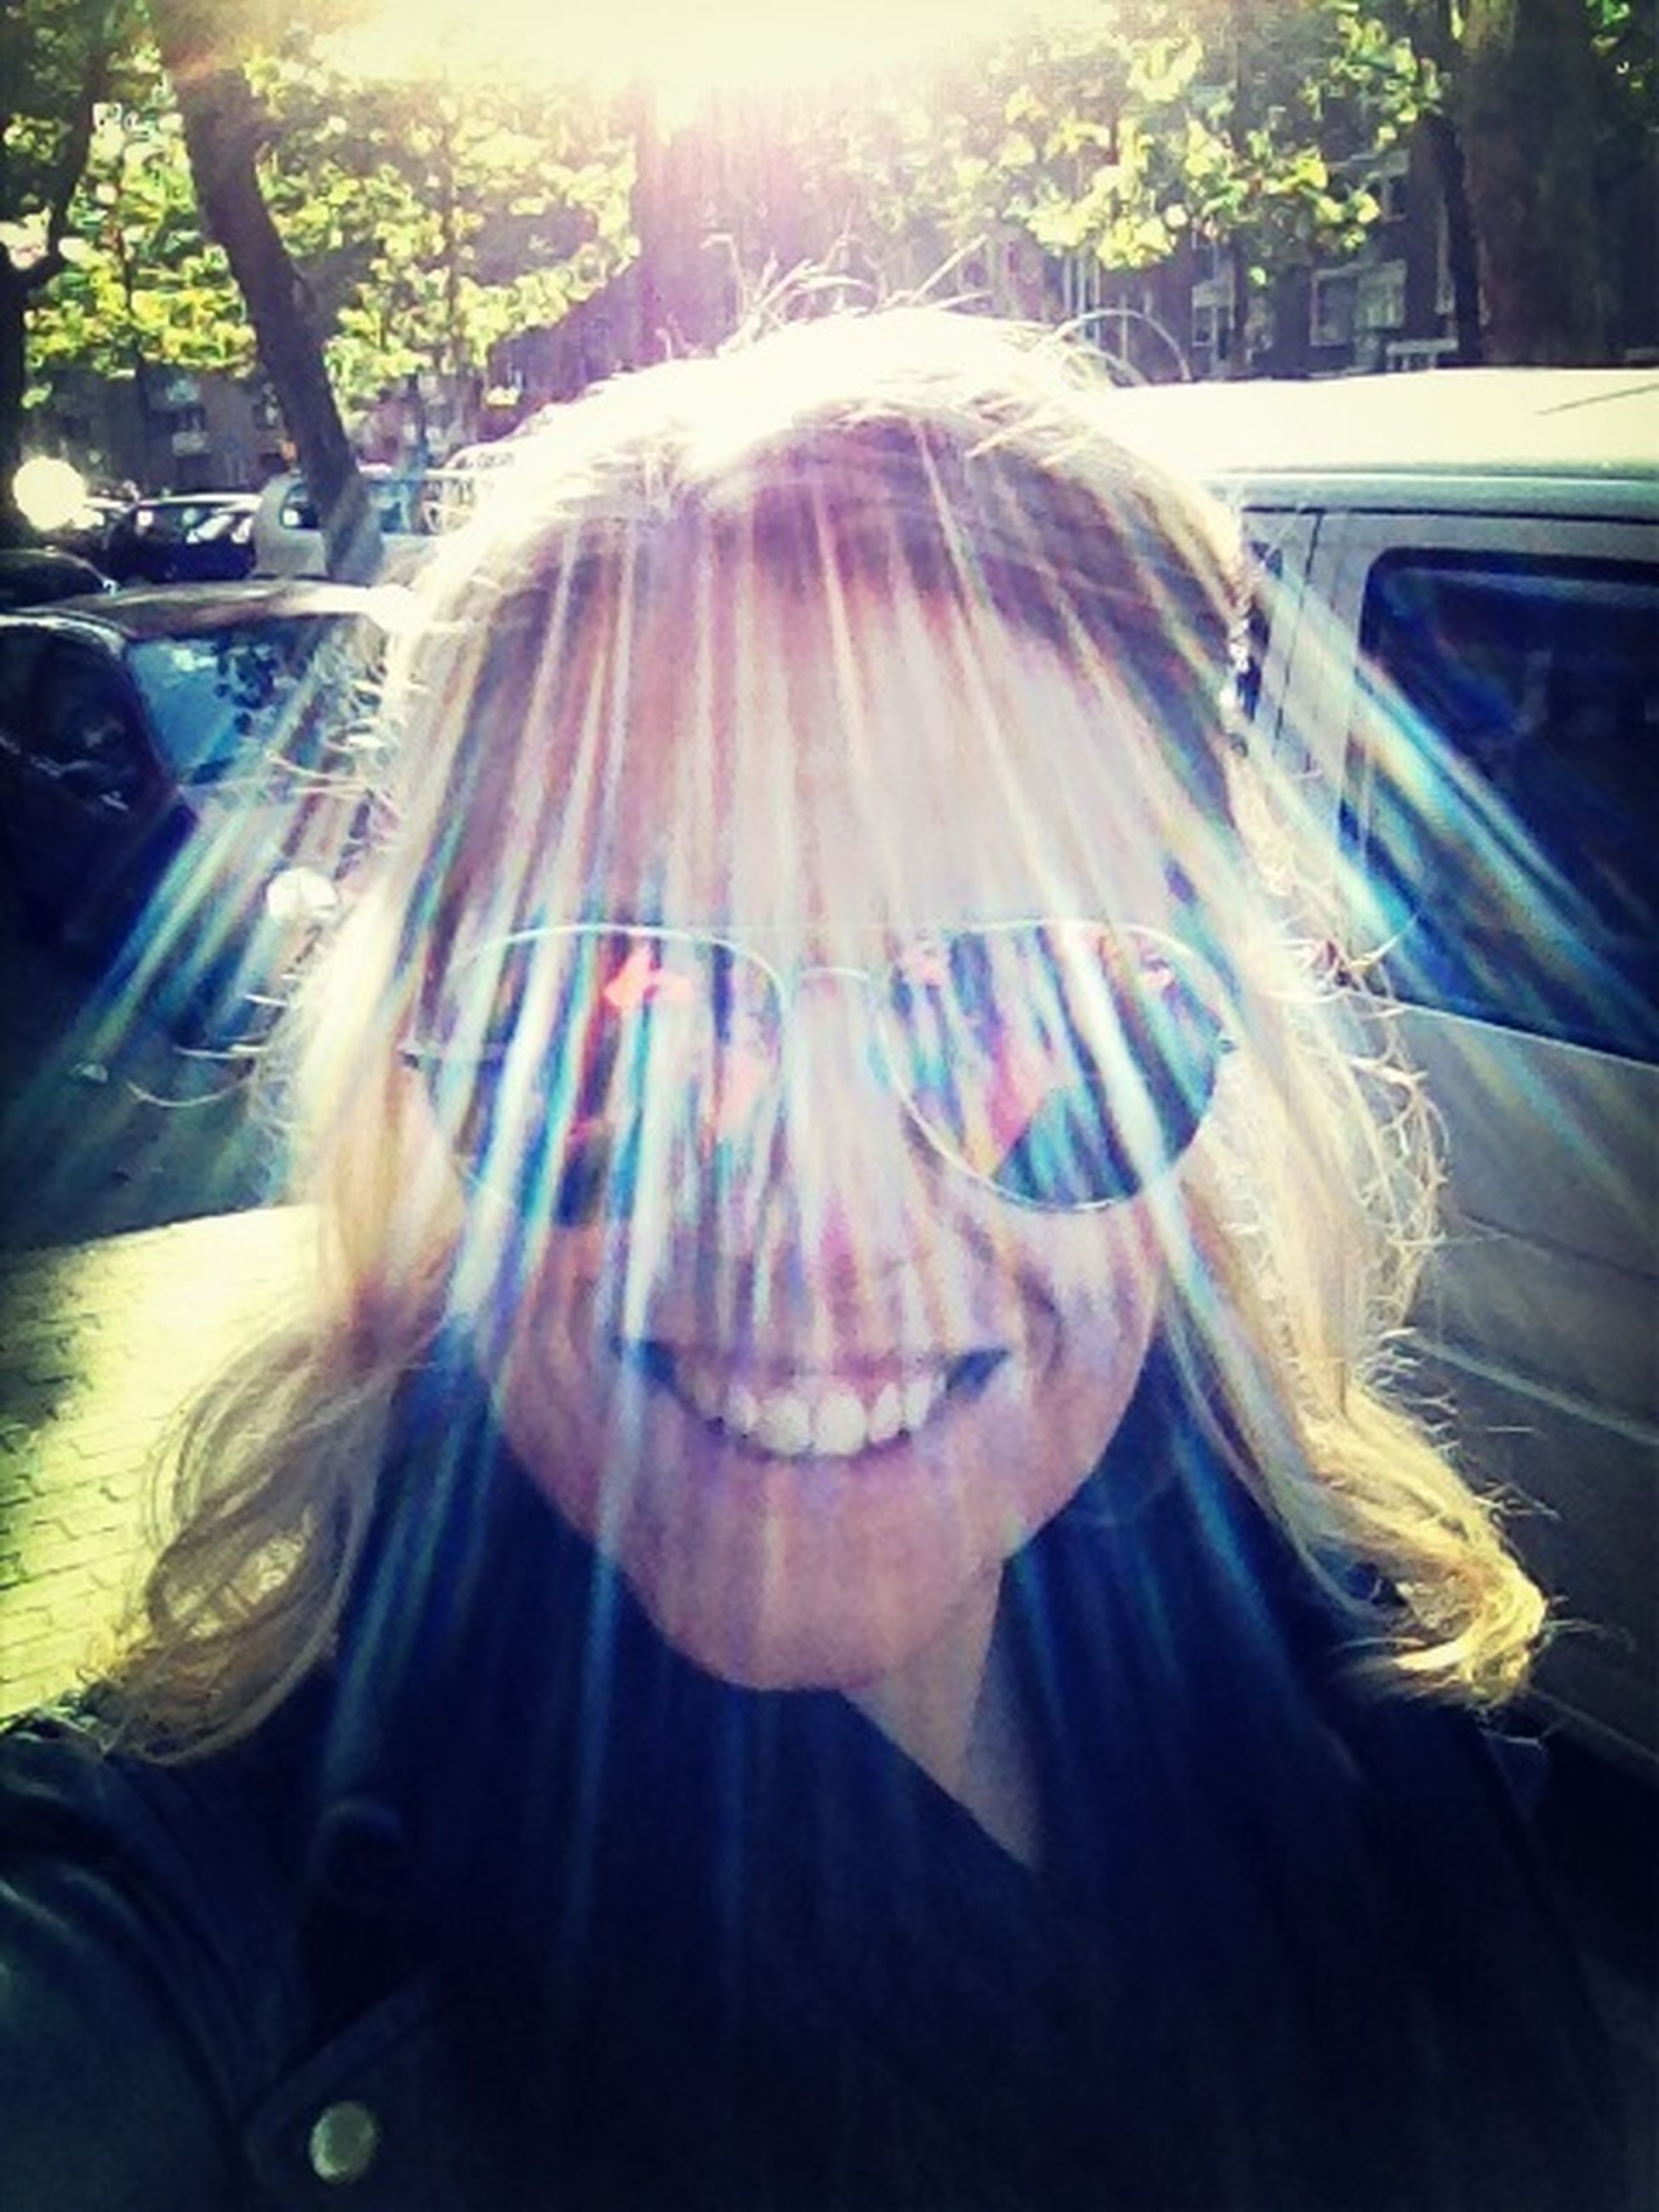 tree, lifestyles, headshot, sunlight, leisure activity, close-up, day, person, sunbeam, young adult, car, lens flare, outdoors, sunglasses, head and shoulders, front view, casual clothing, transportation